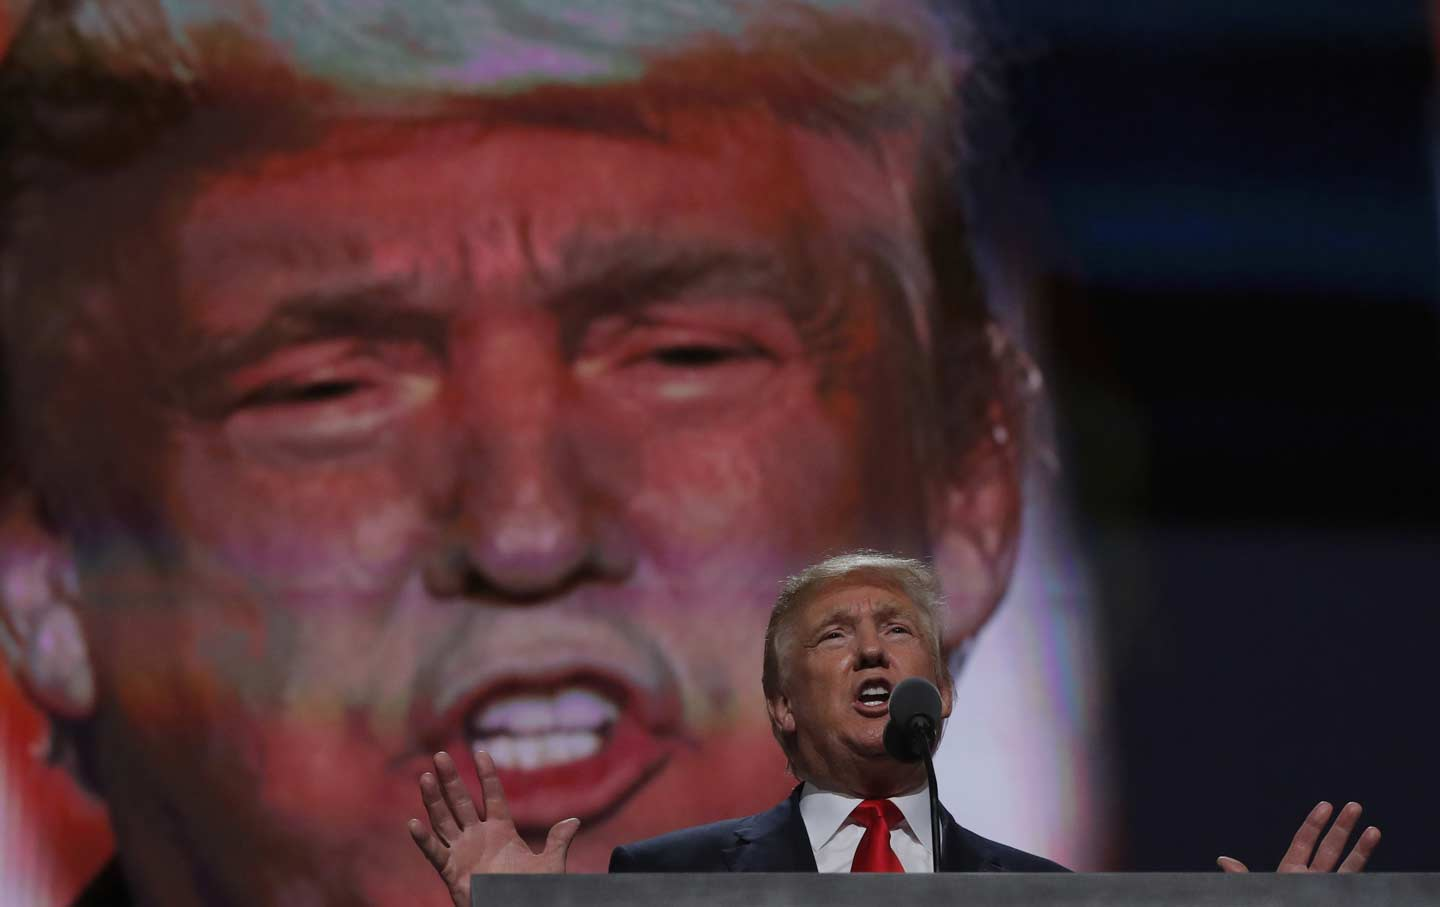 Donald Trump speaking at the final session of the Republican National Convention in Cleveland, Ohio.